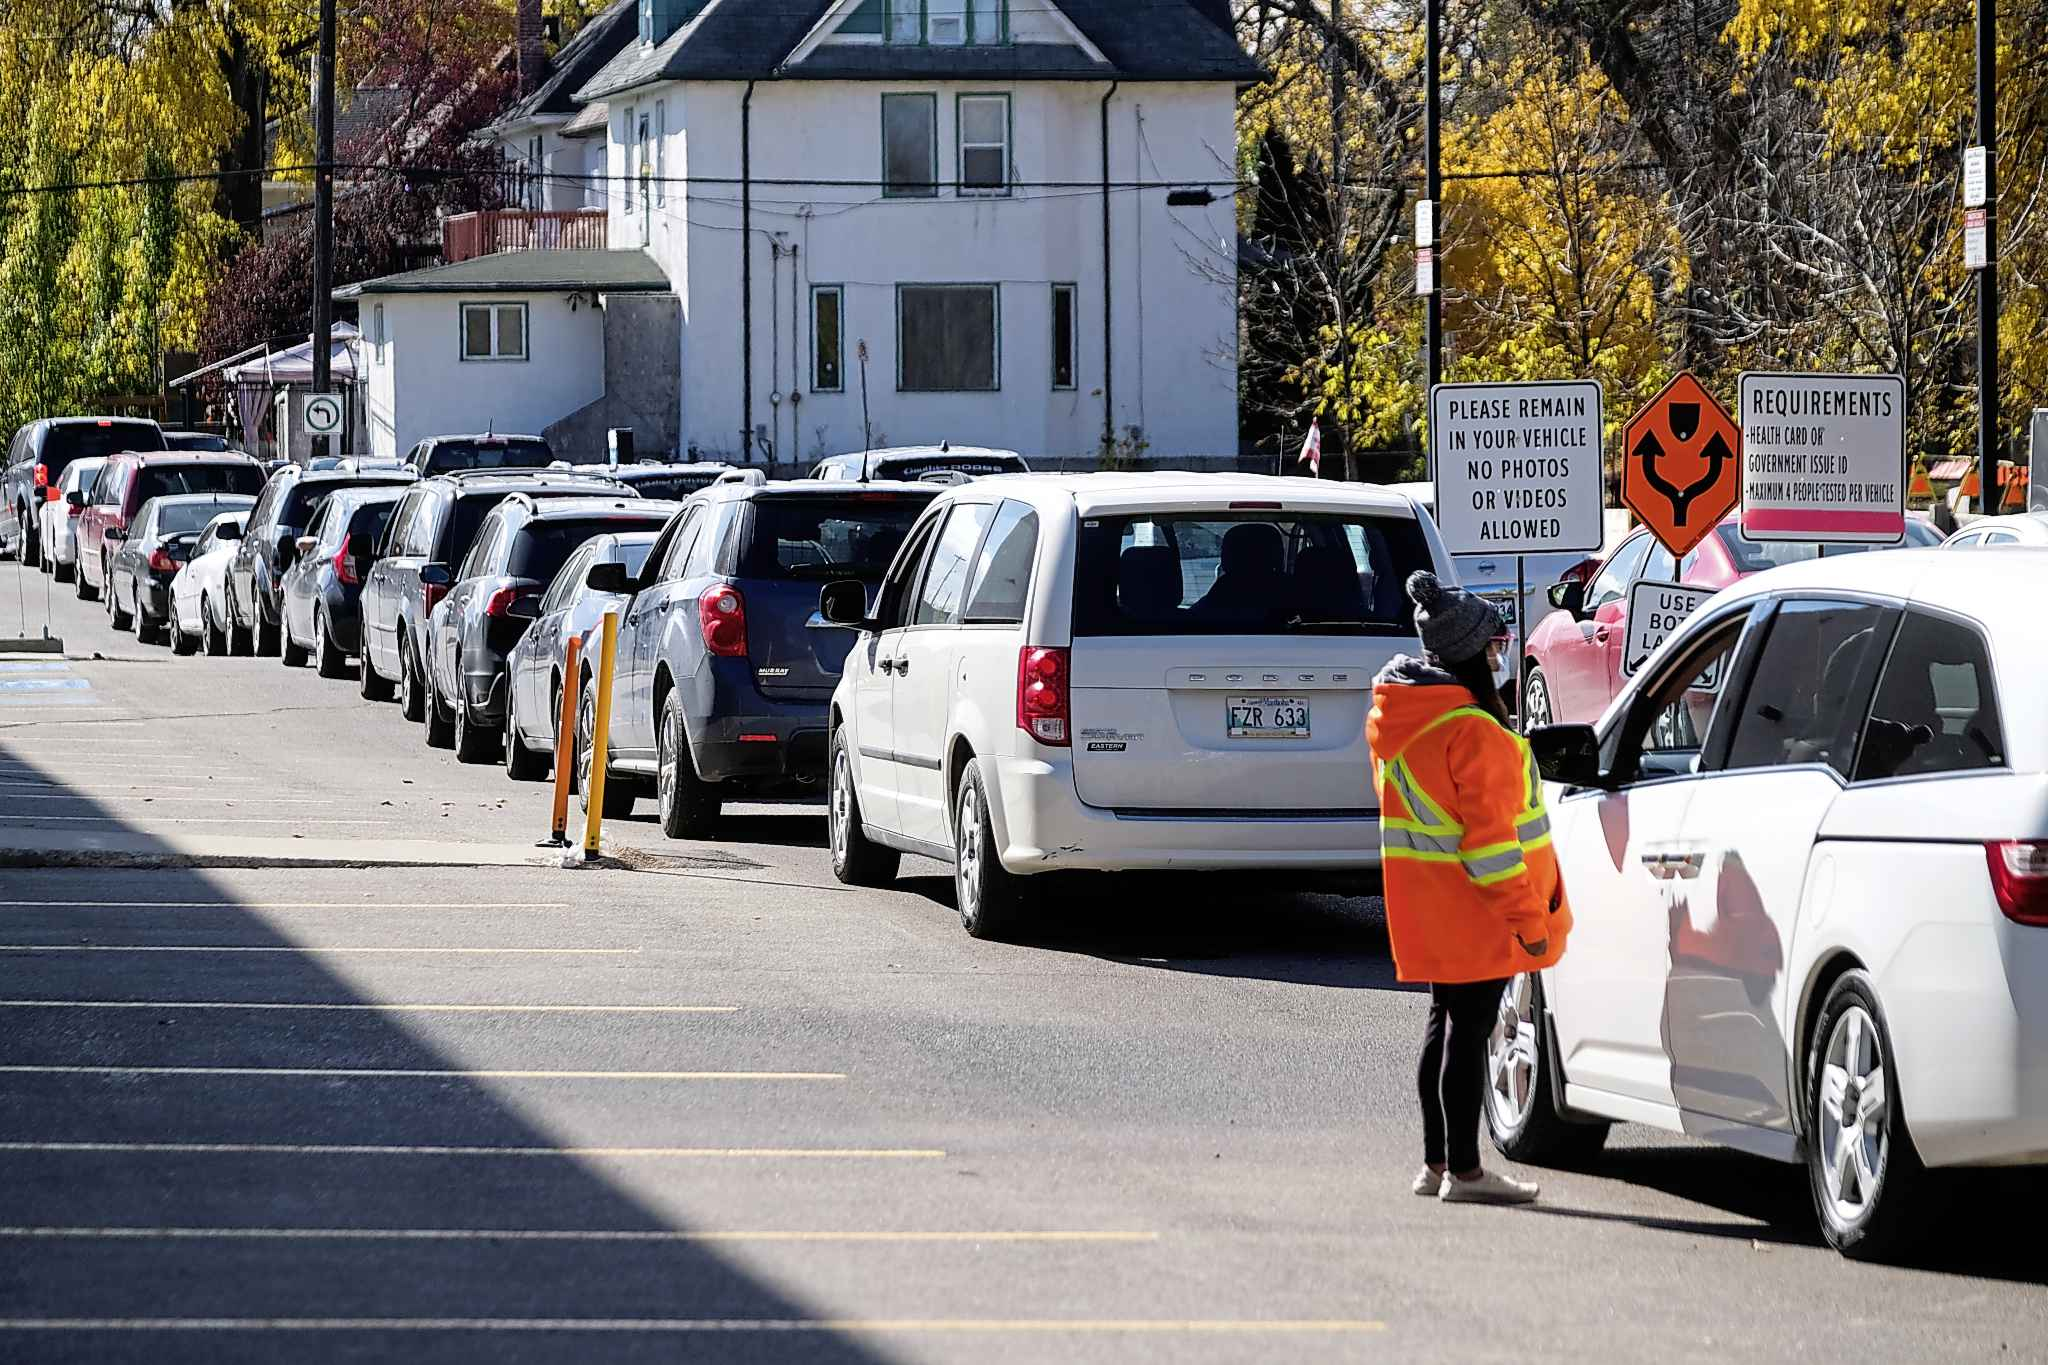 People endure long waits in their vehicles at a drive-in COVID test site in Winnipeg on Oct. 10.